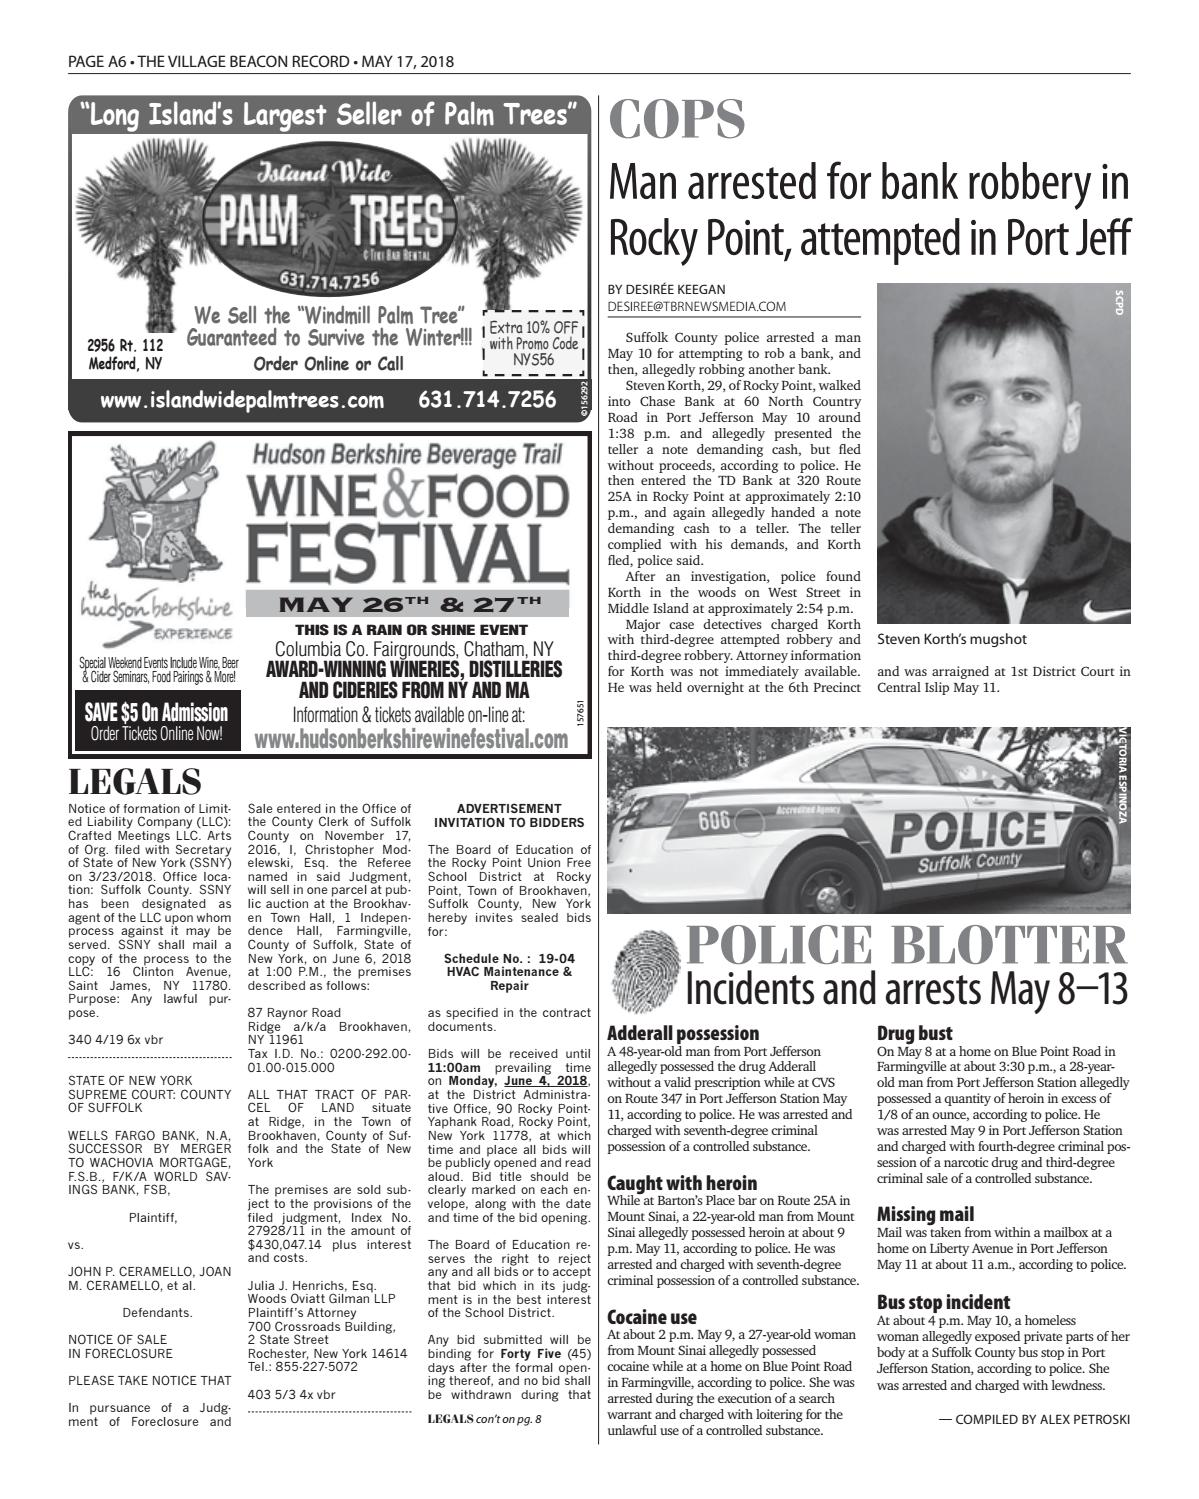 The Village Beacon Record - May 17, 2018 by TBR News Media